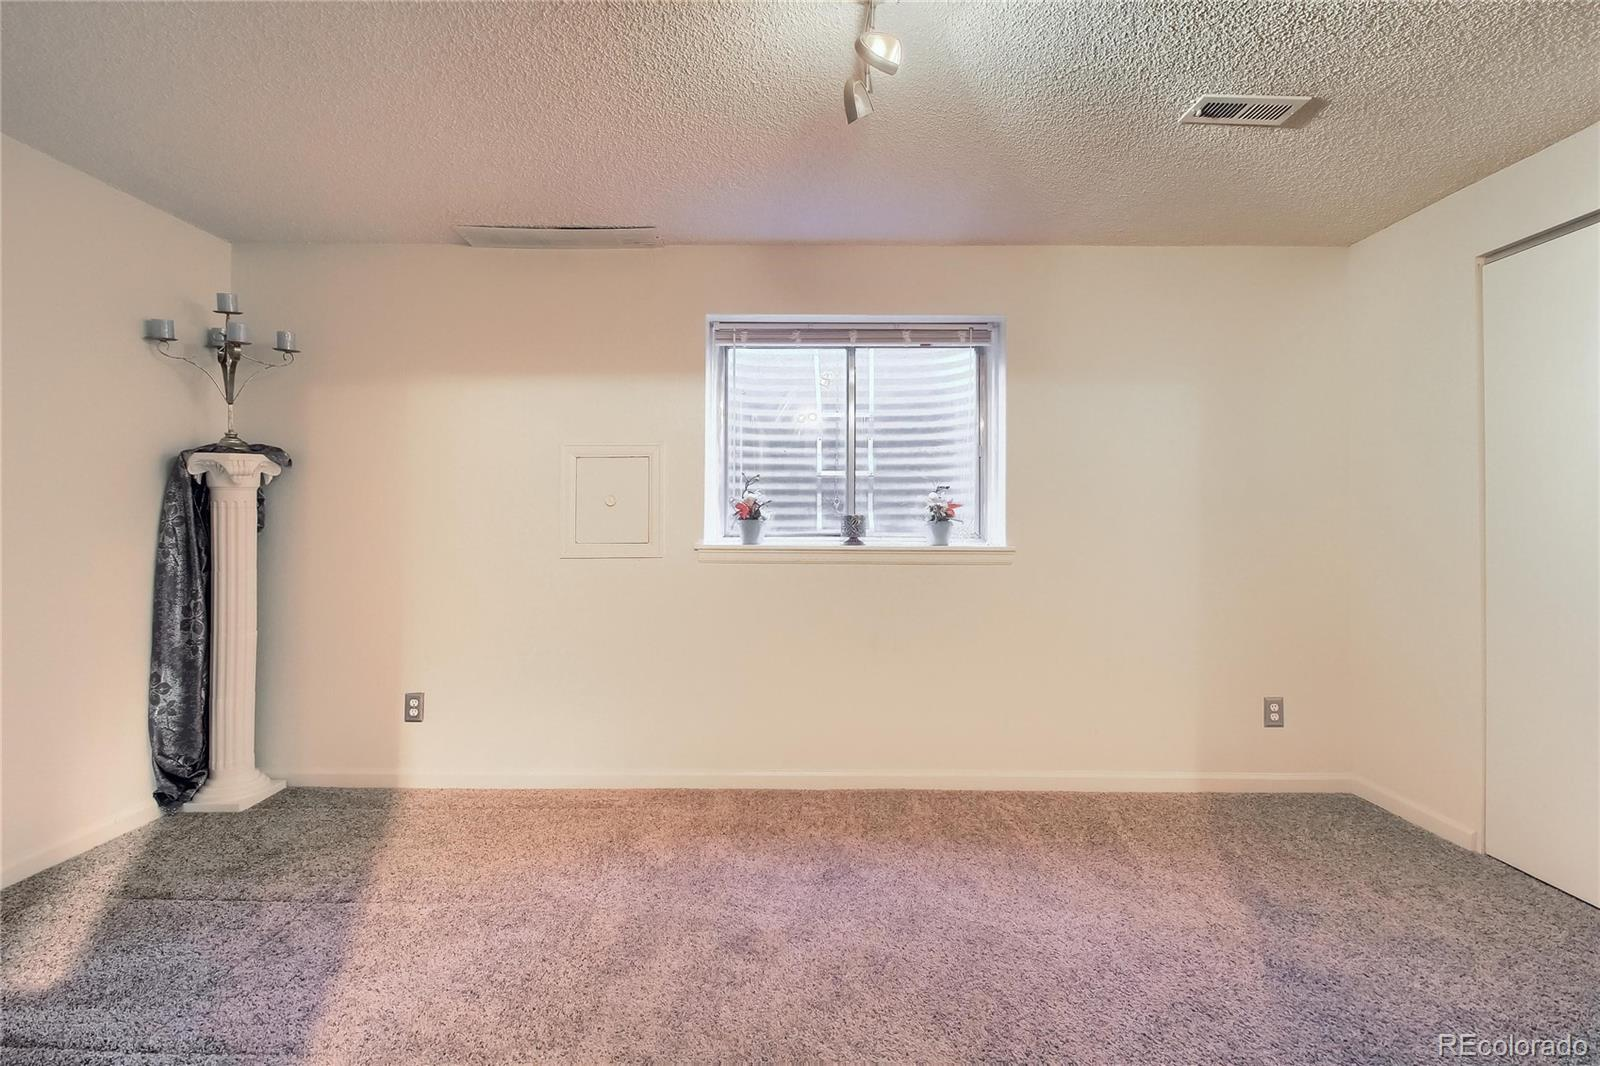 MLS# 3641043 - 23 - 3510 S Telluride Circle #C, Aurora, CO 80013